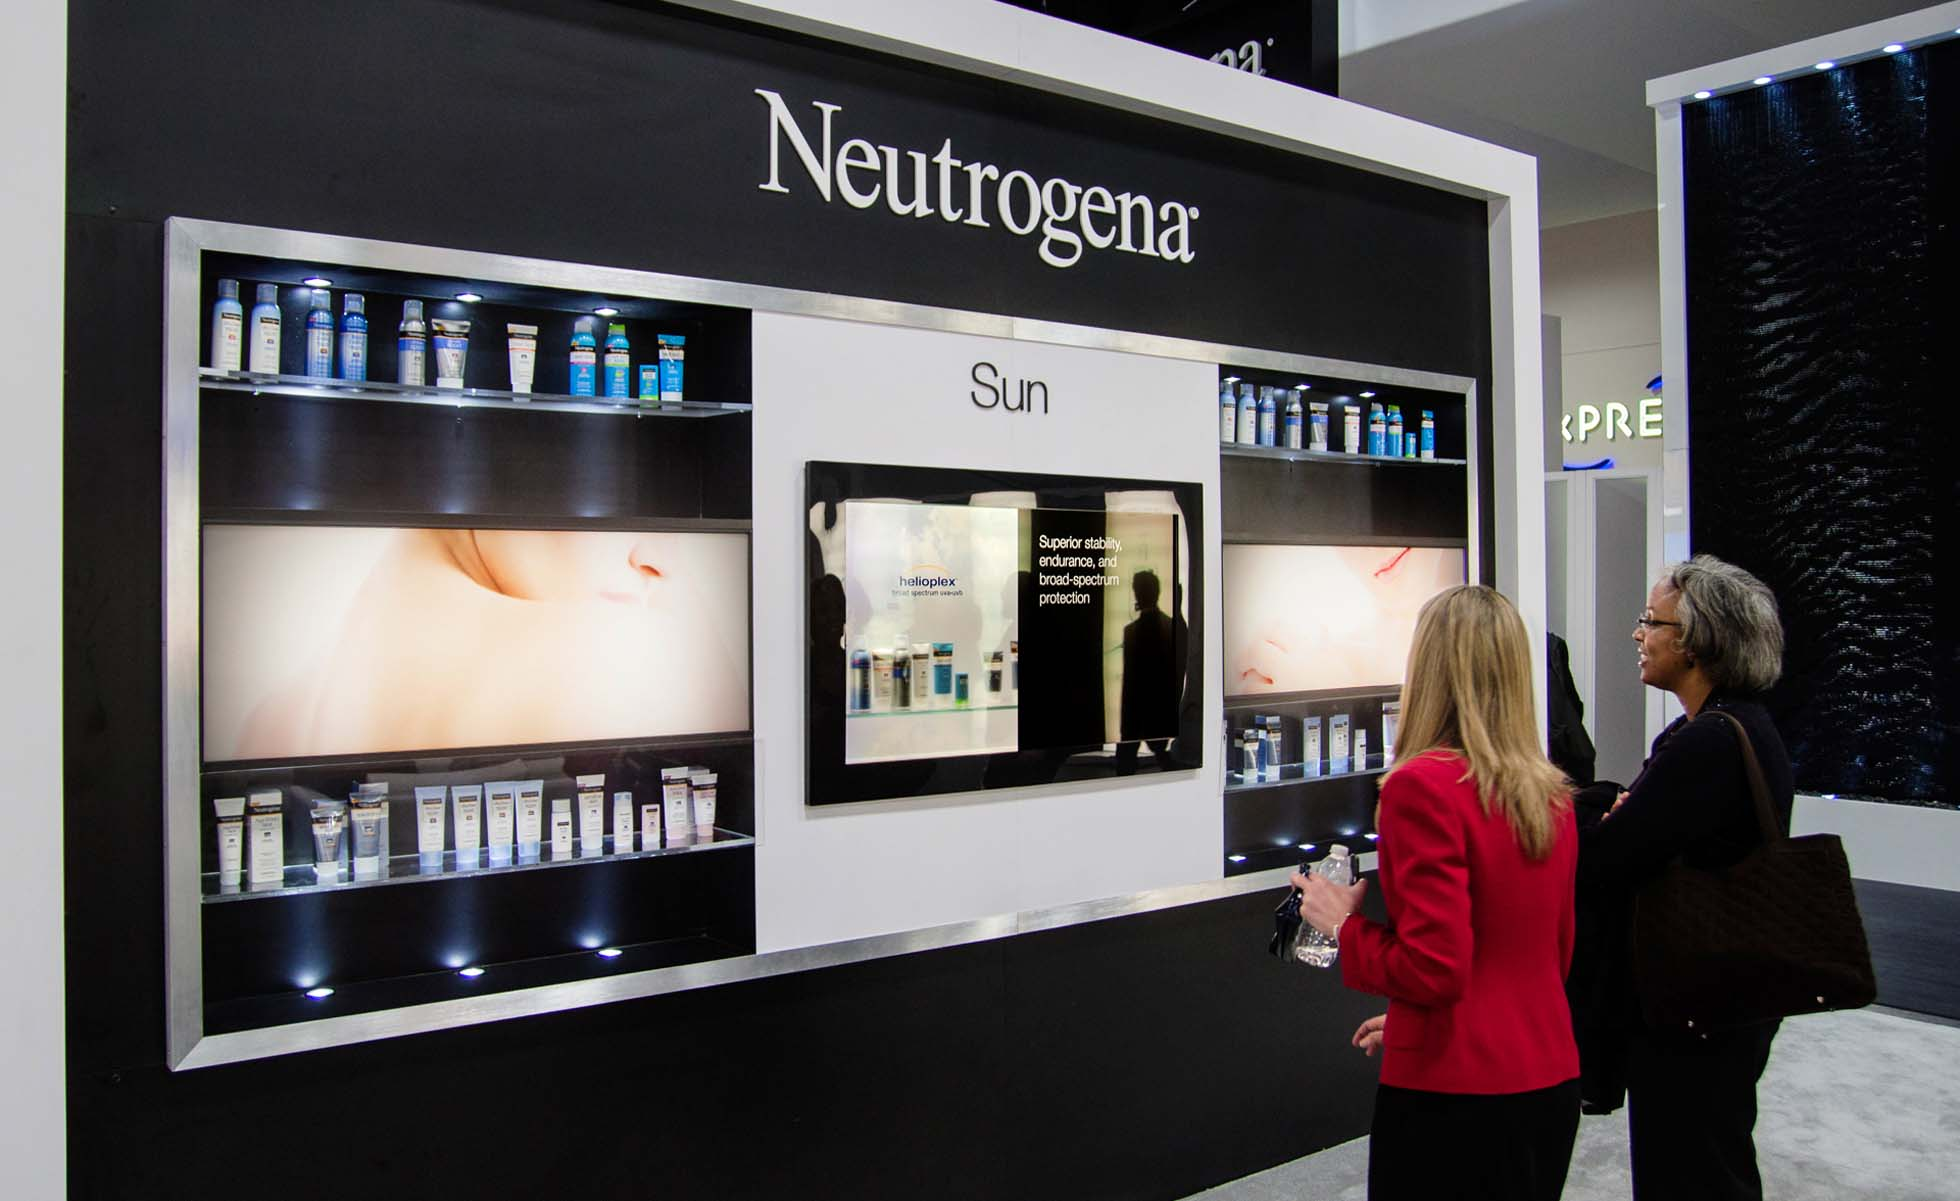 Iontank - Neutrogena Exhibits